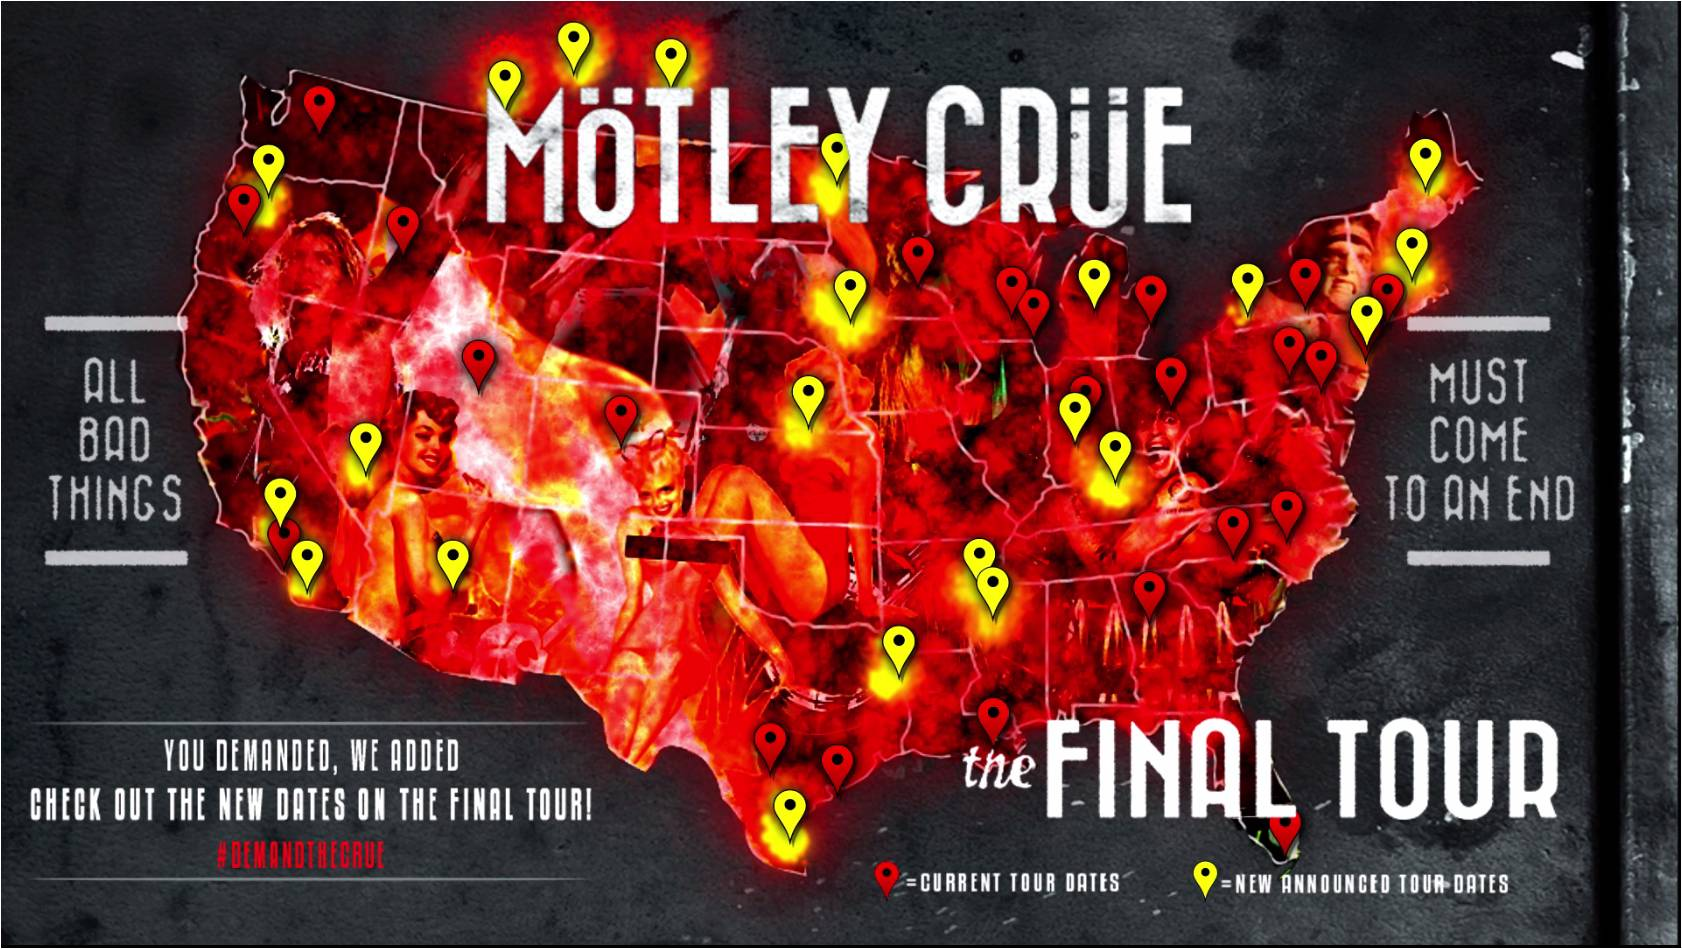 Motley Crue Final Tour Dates Australia